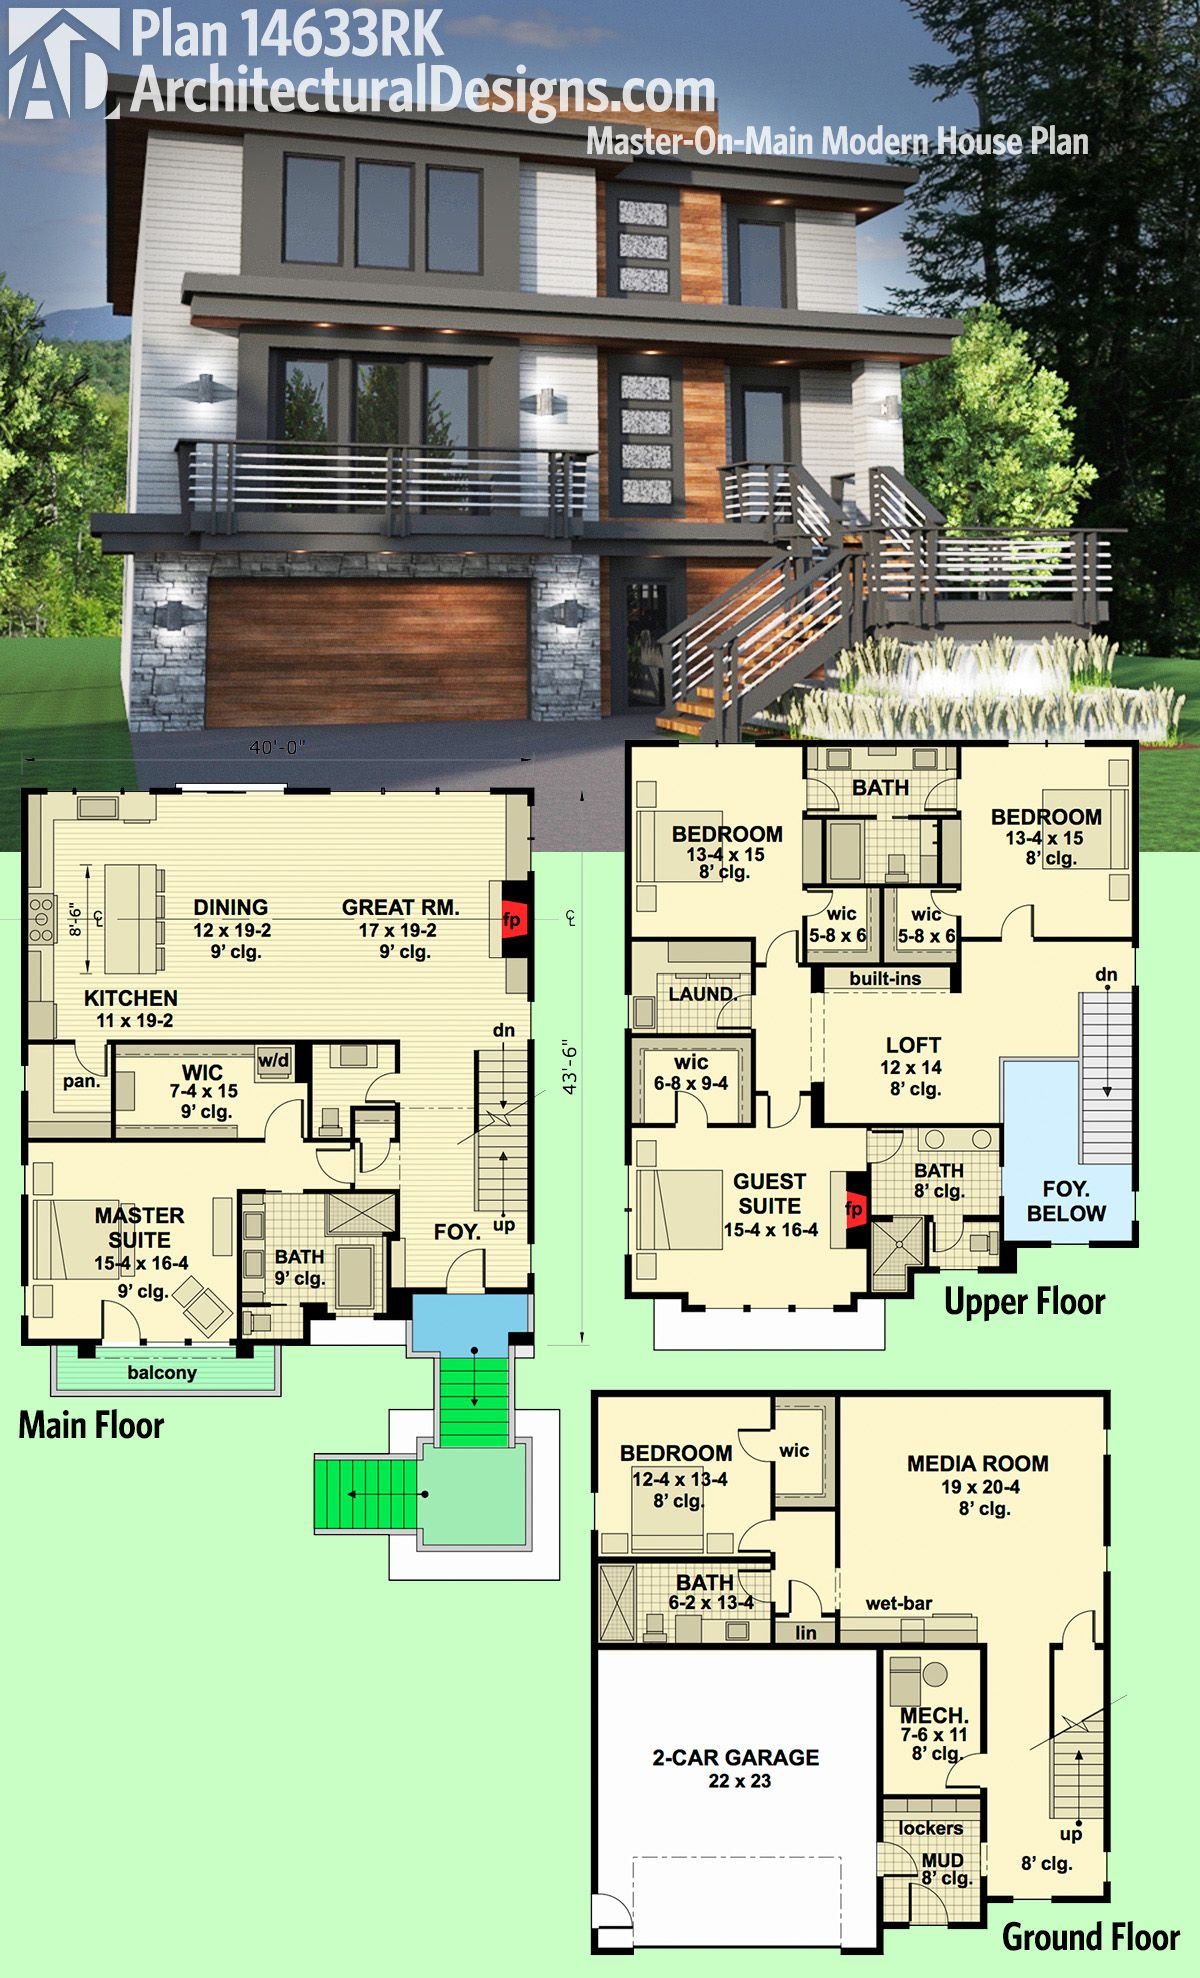 Plan 14633rk master on main modern house plan modern for Modern home design plans